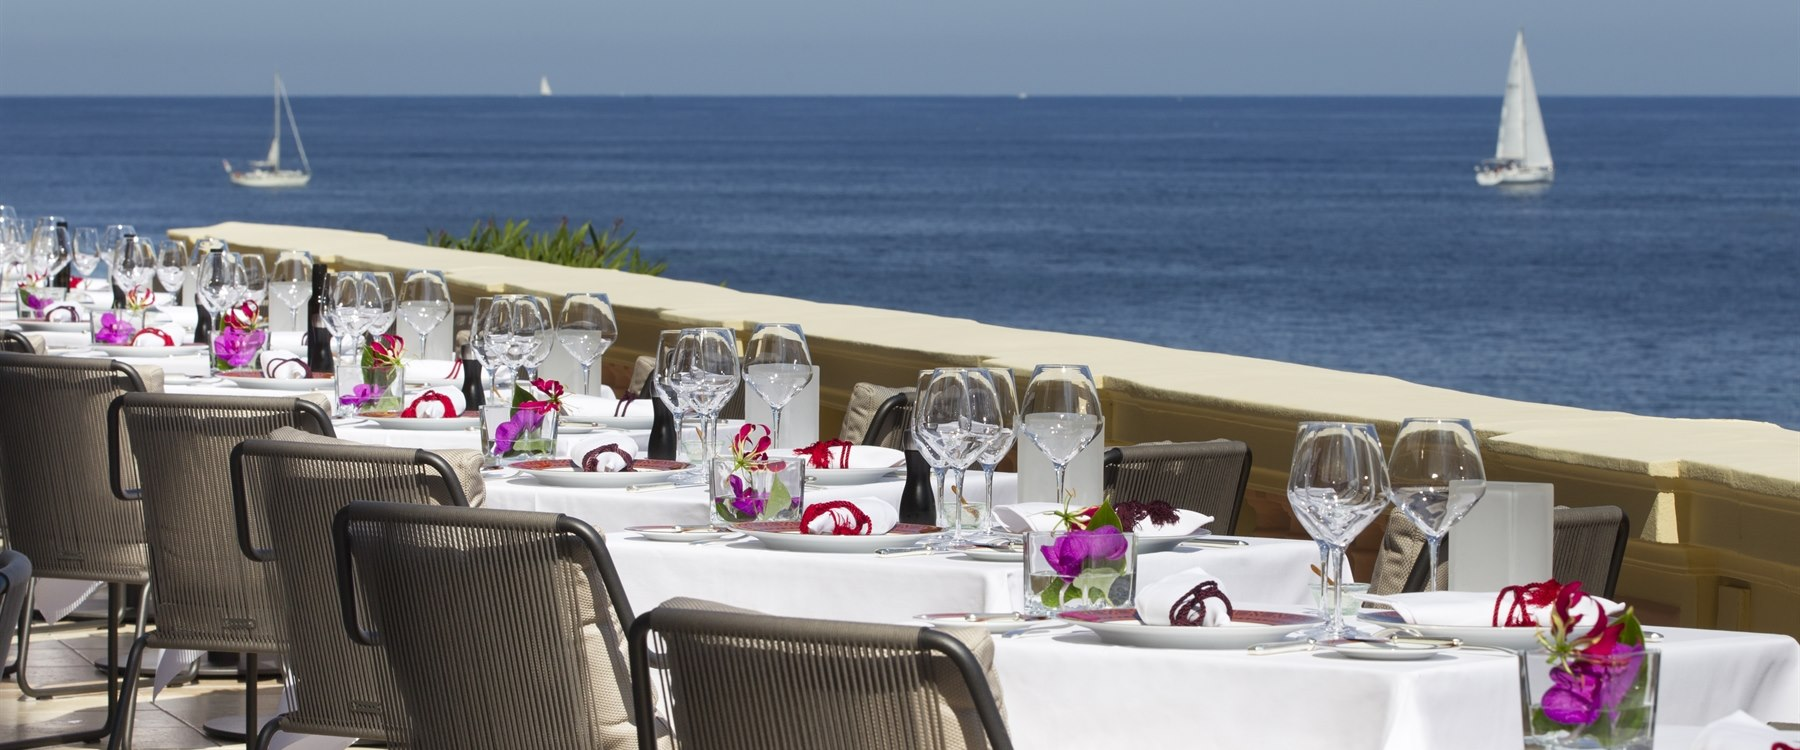 La Table Du Royal at Royal Riviera, France